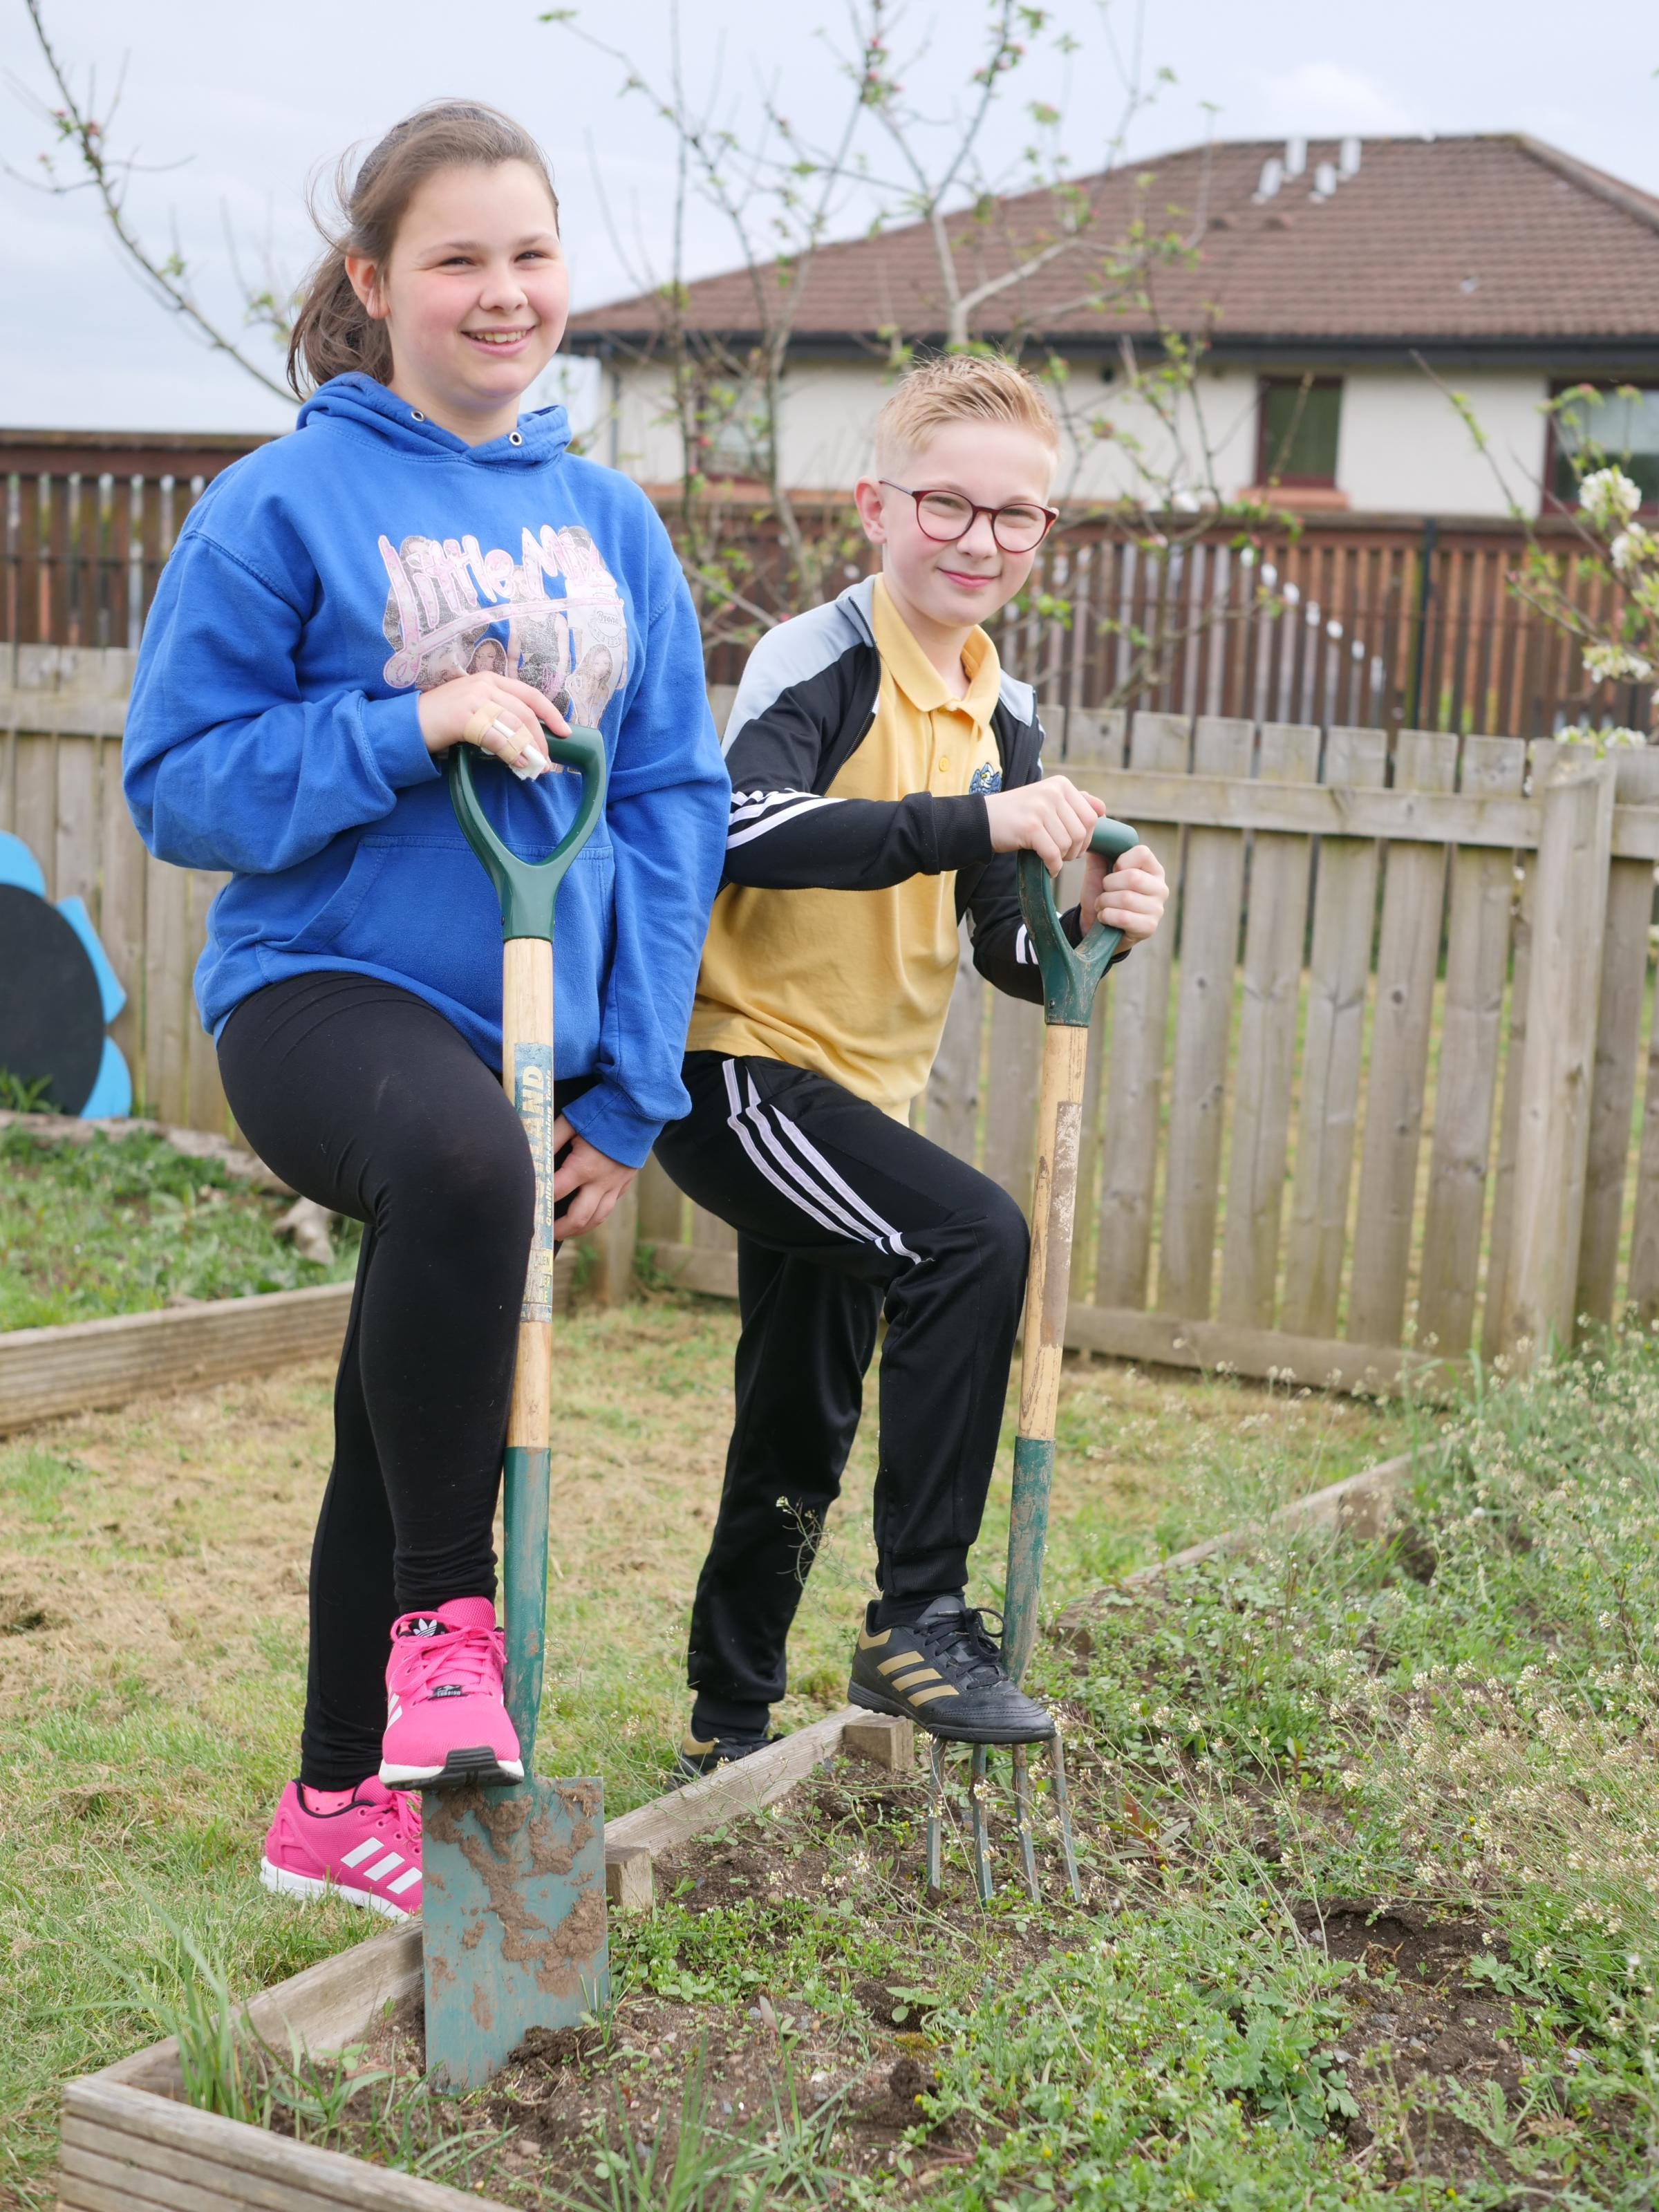 Abbigail Boyle and Luca Salmoni have been digging in to help out